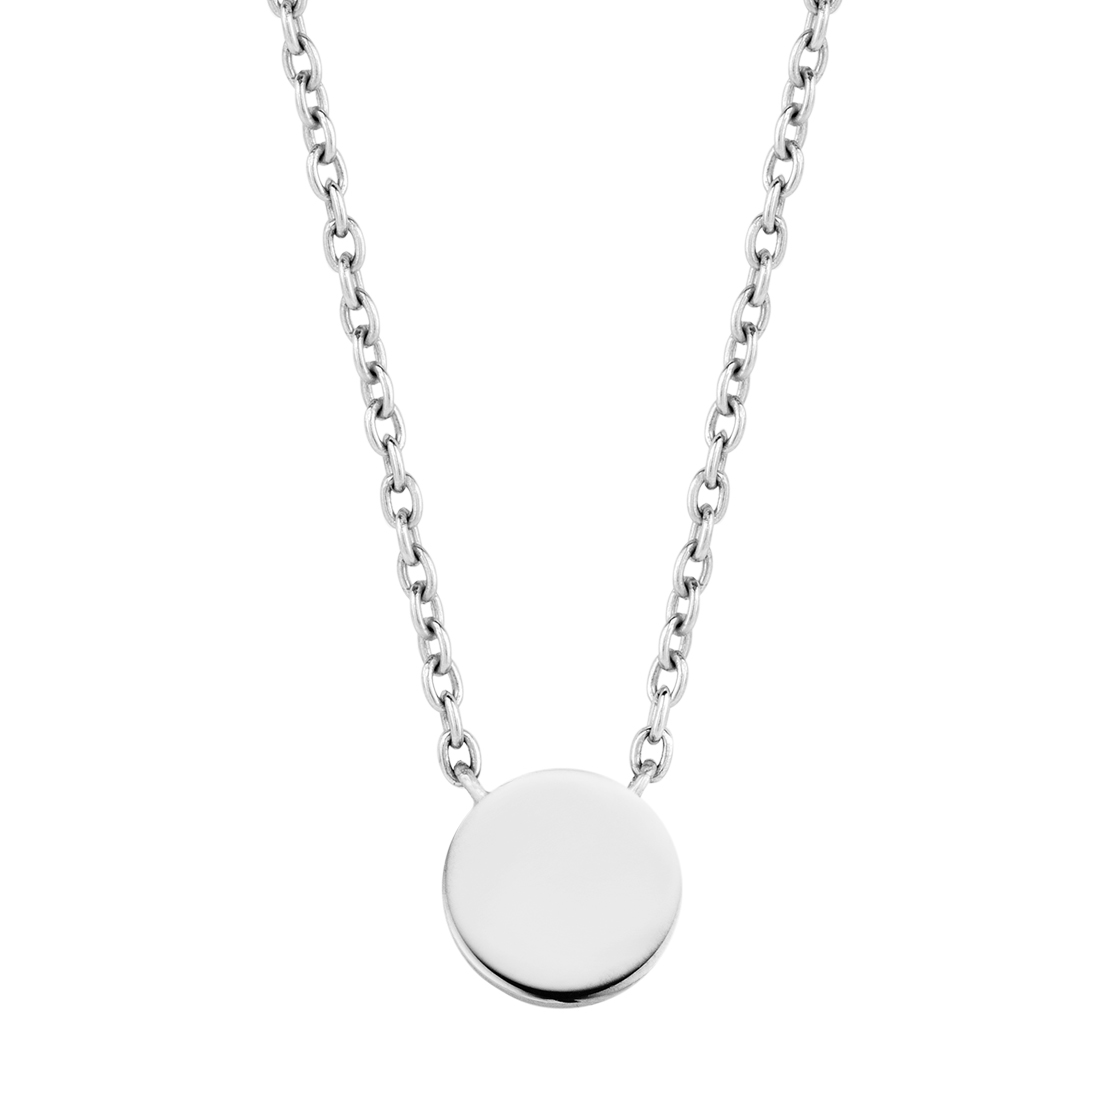 TI SENTO - Milano Necklace 3892SI